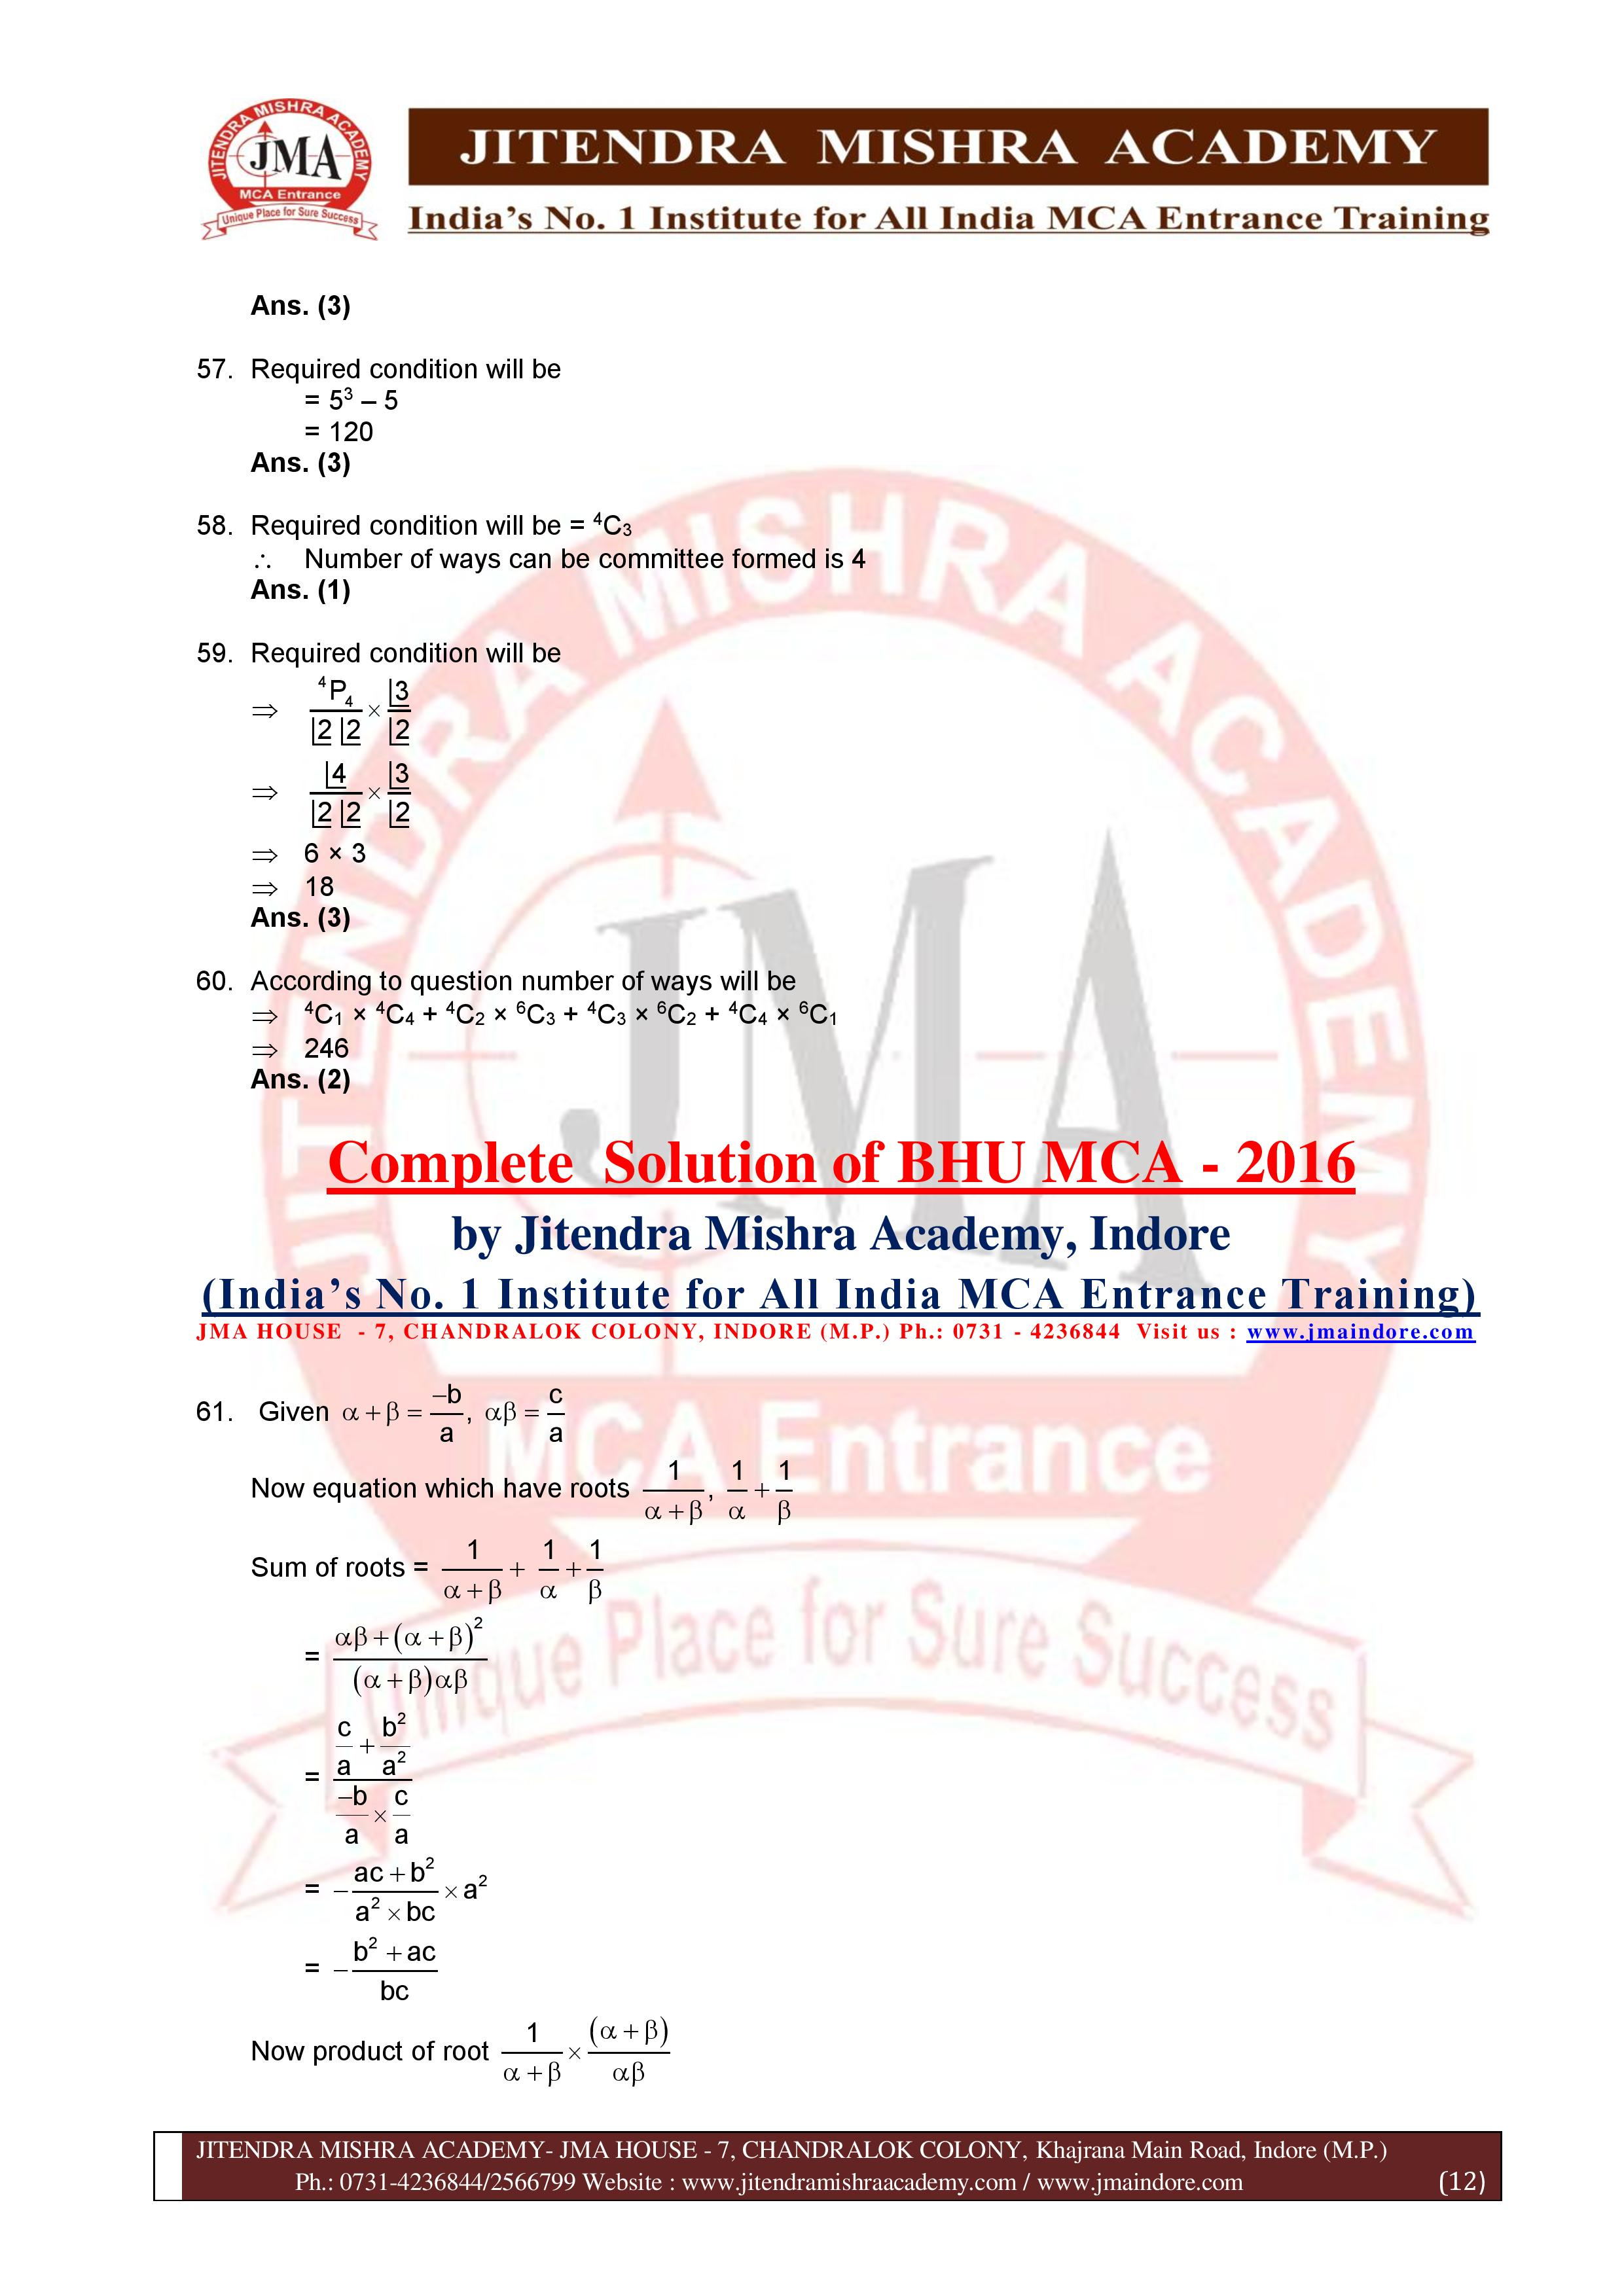 BHU 2016 SOLUTION (SET - 1)-page-012